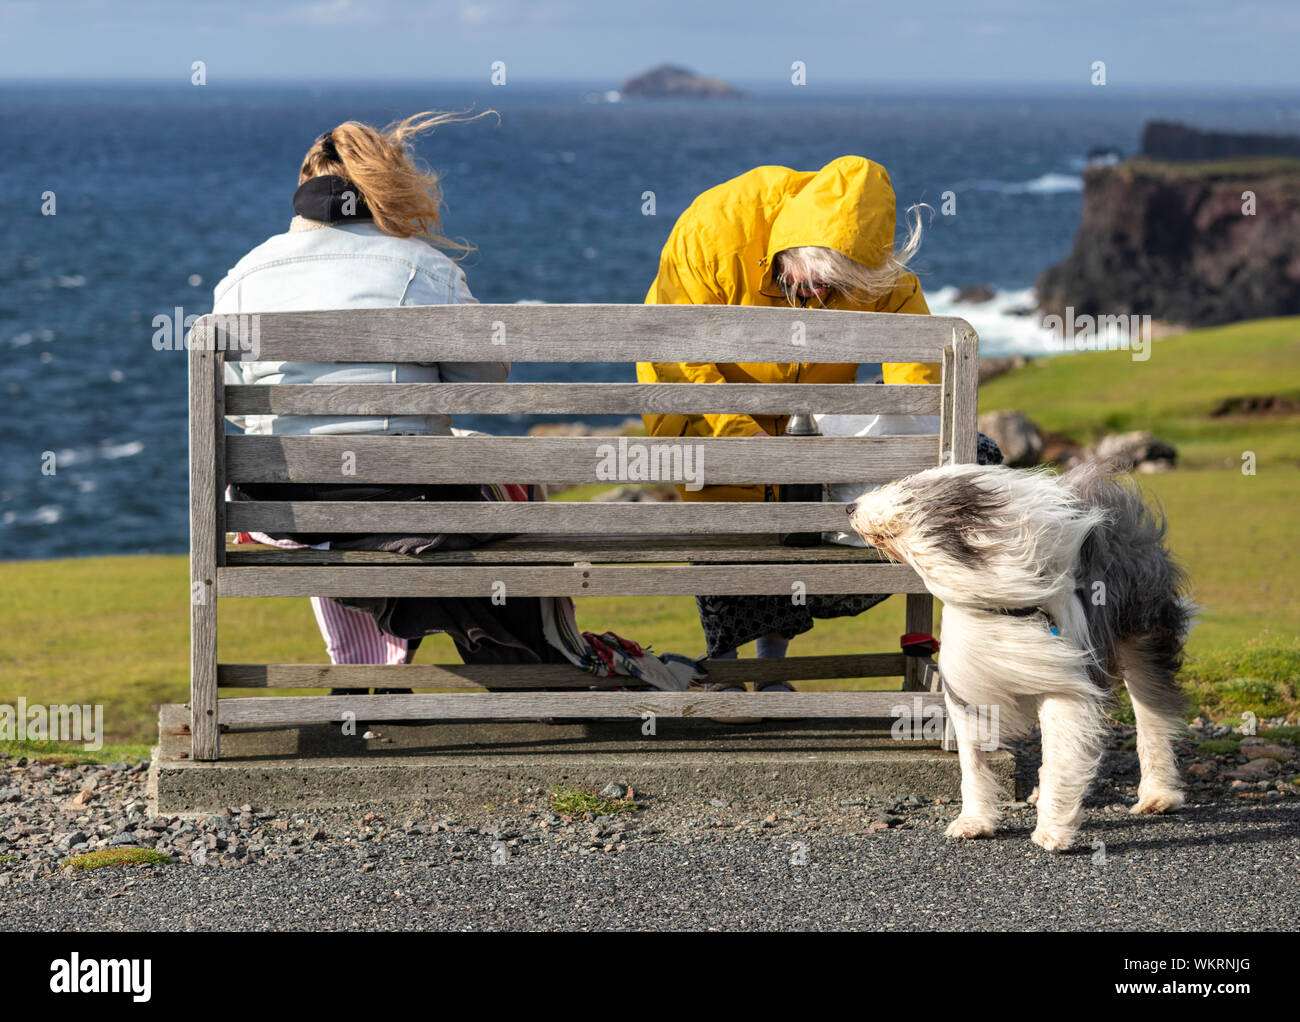 Women blowing her hair and Old English Sheepdog with his hear blowing due  to strong wind, Northmavine peninsula, Mainland, Shetland, Scotland, UK  Stock Photo - Alamy